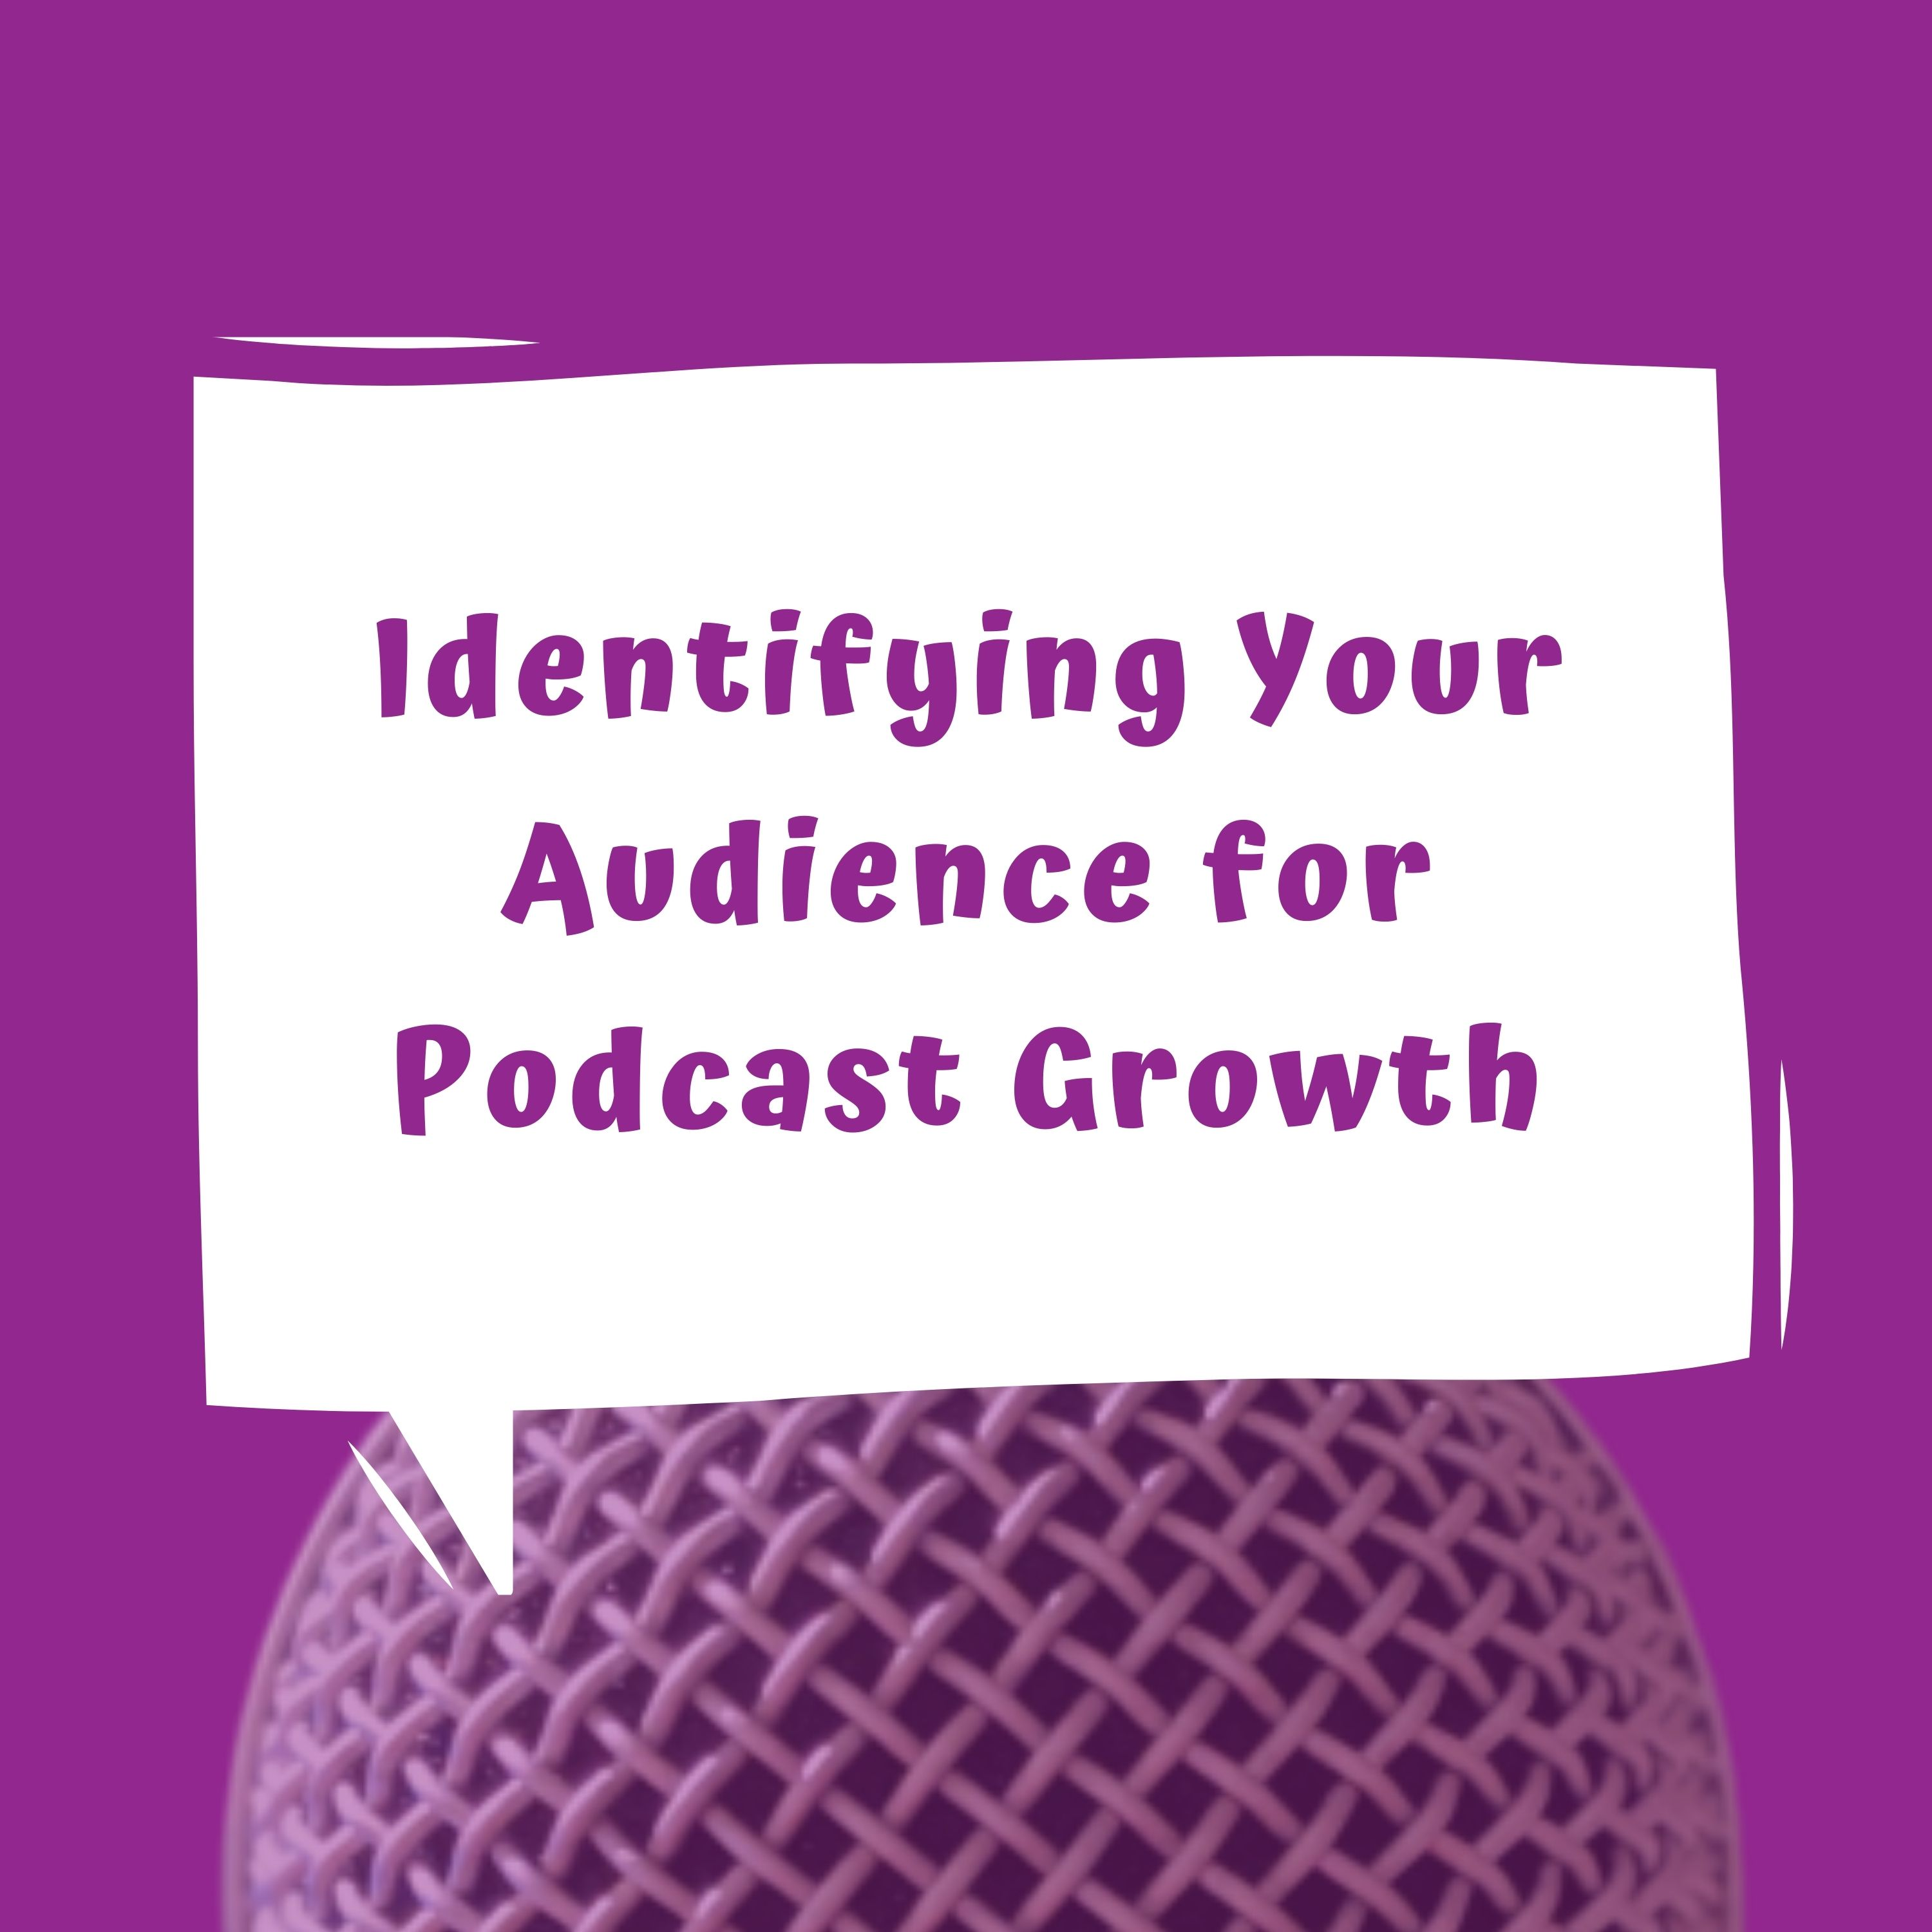 Identifying Your Audience for Podcast Growth